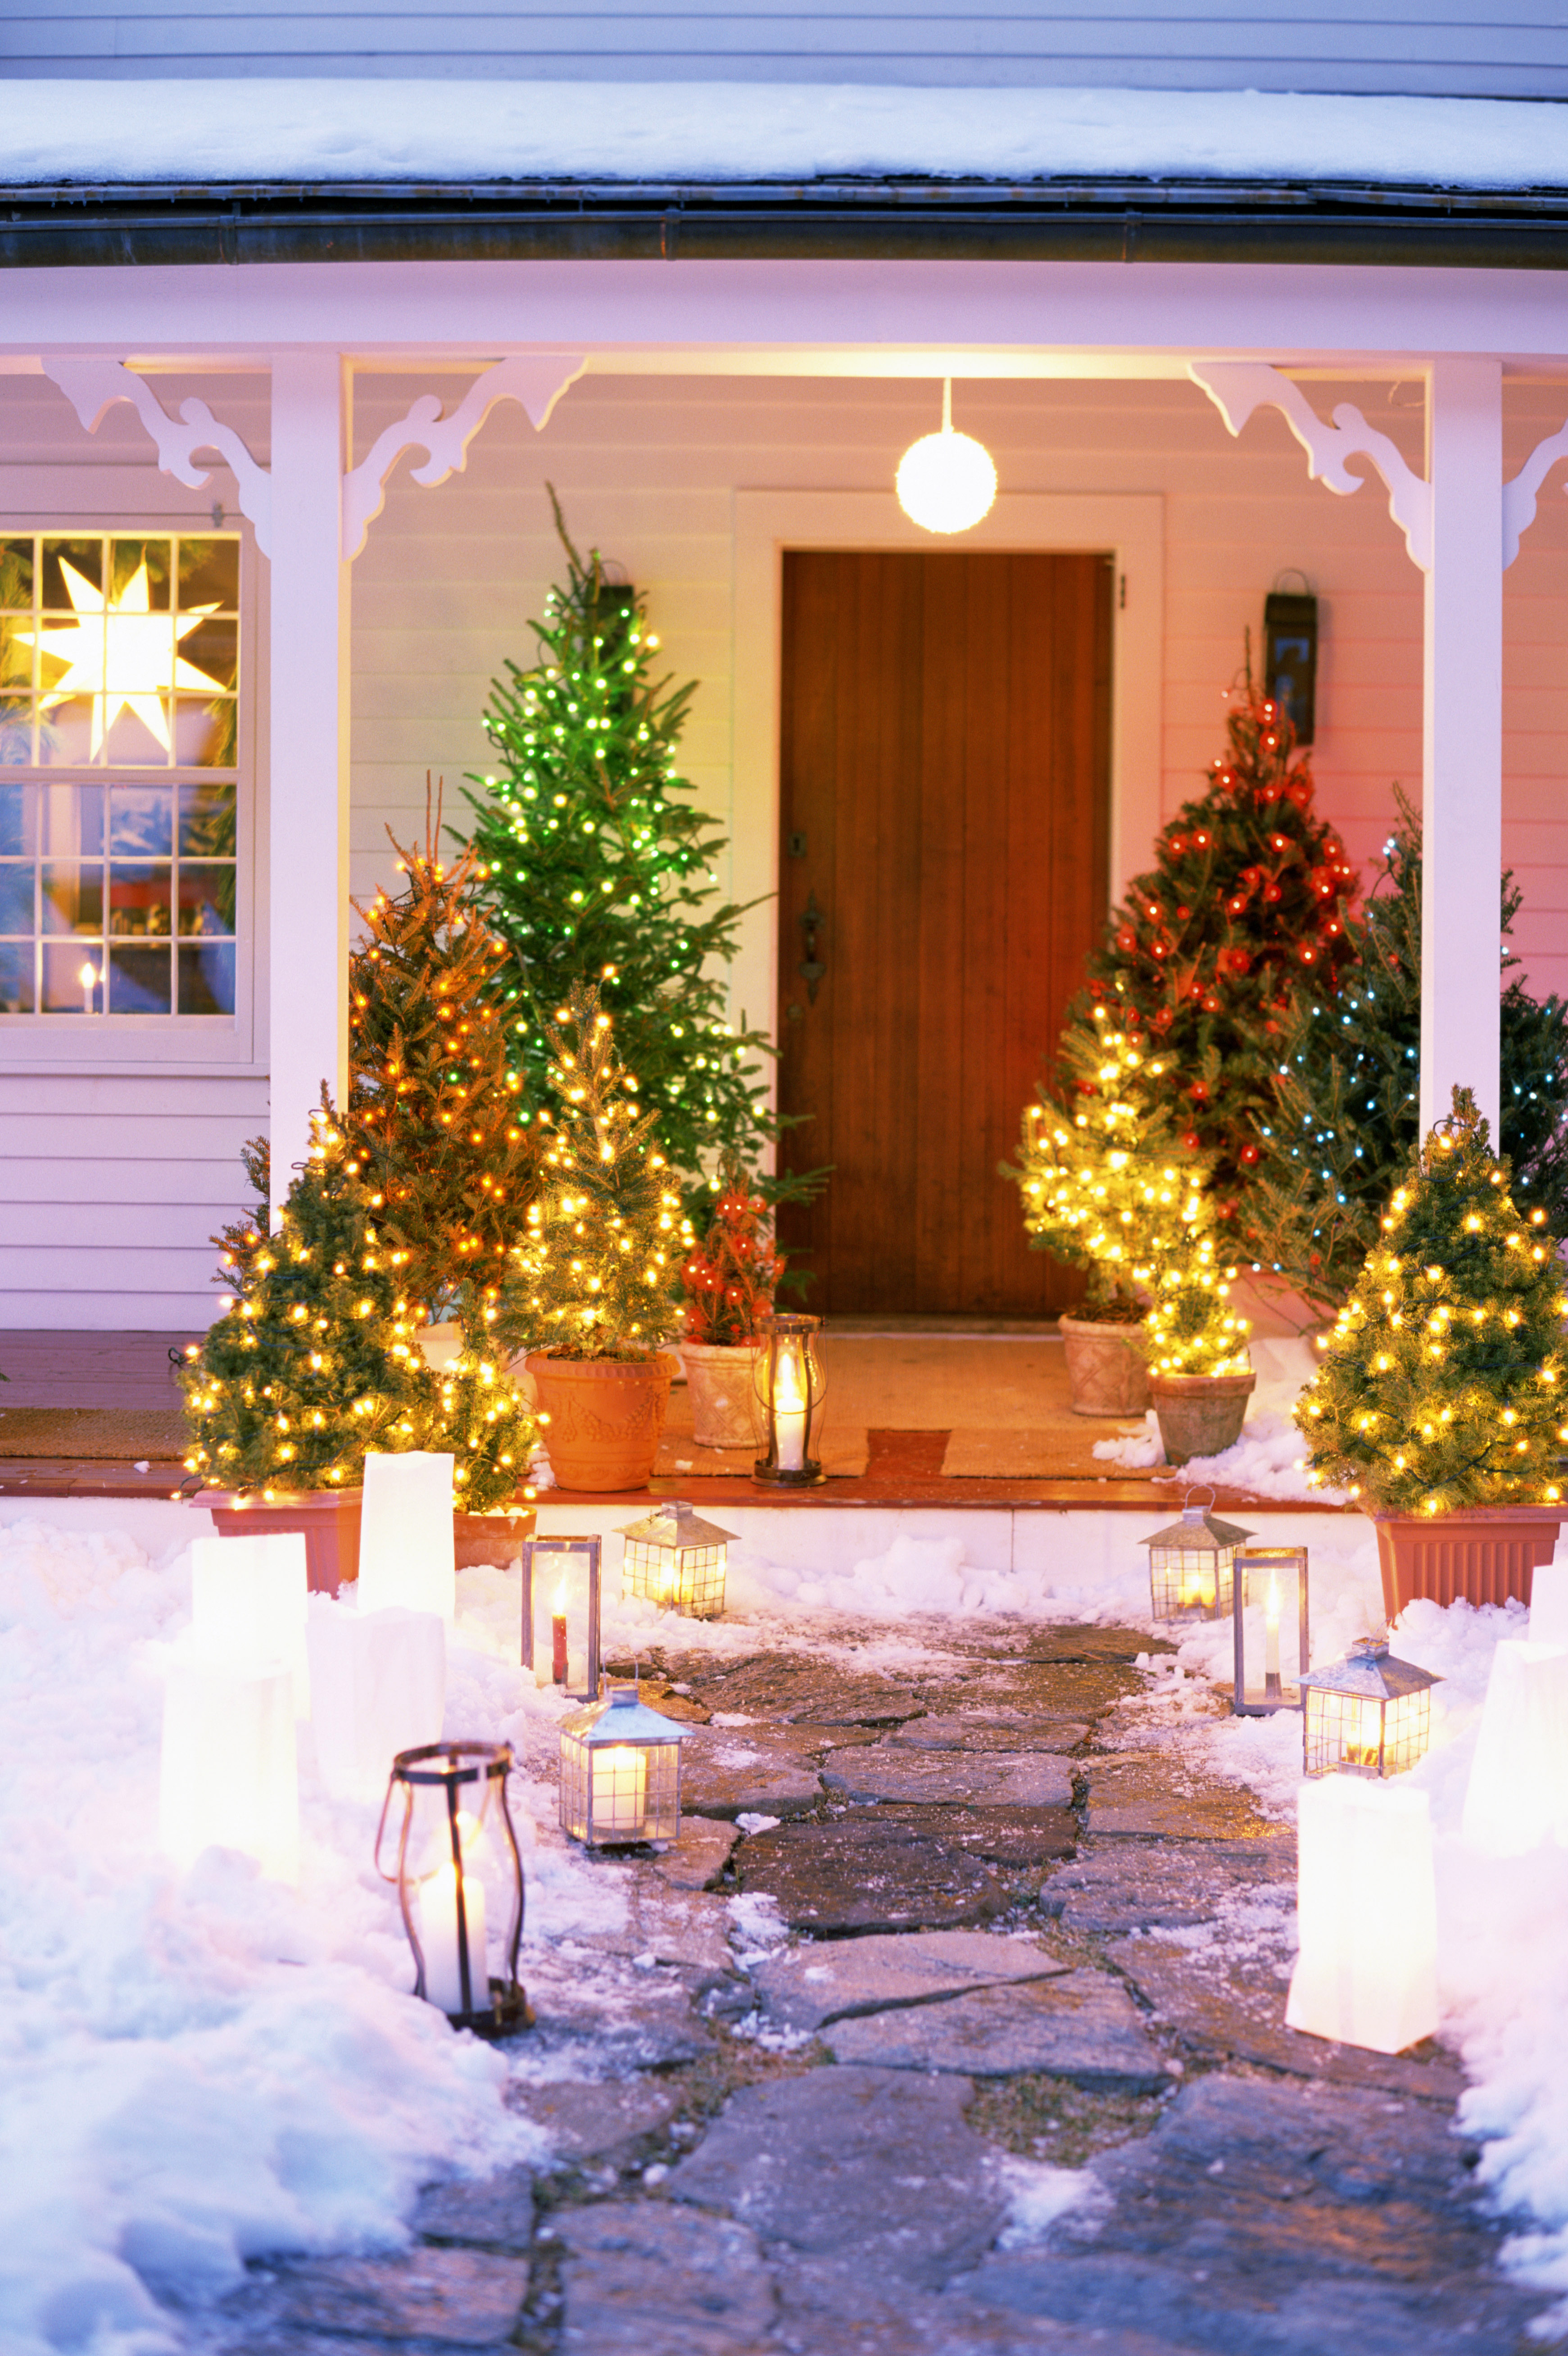 christmas outdoor lighting ideas. 17 outdoor christmas light decoration ideas outside lights display pictures lighting y